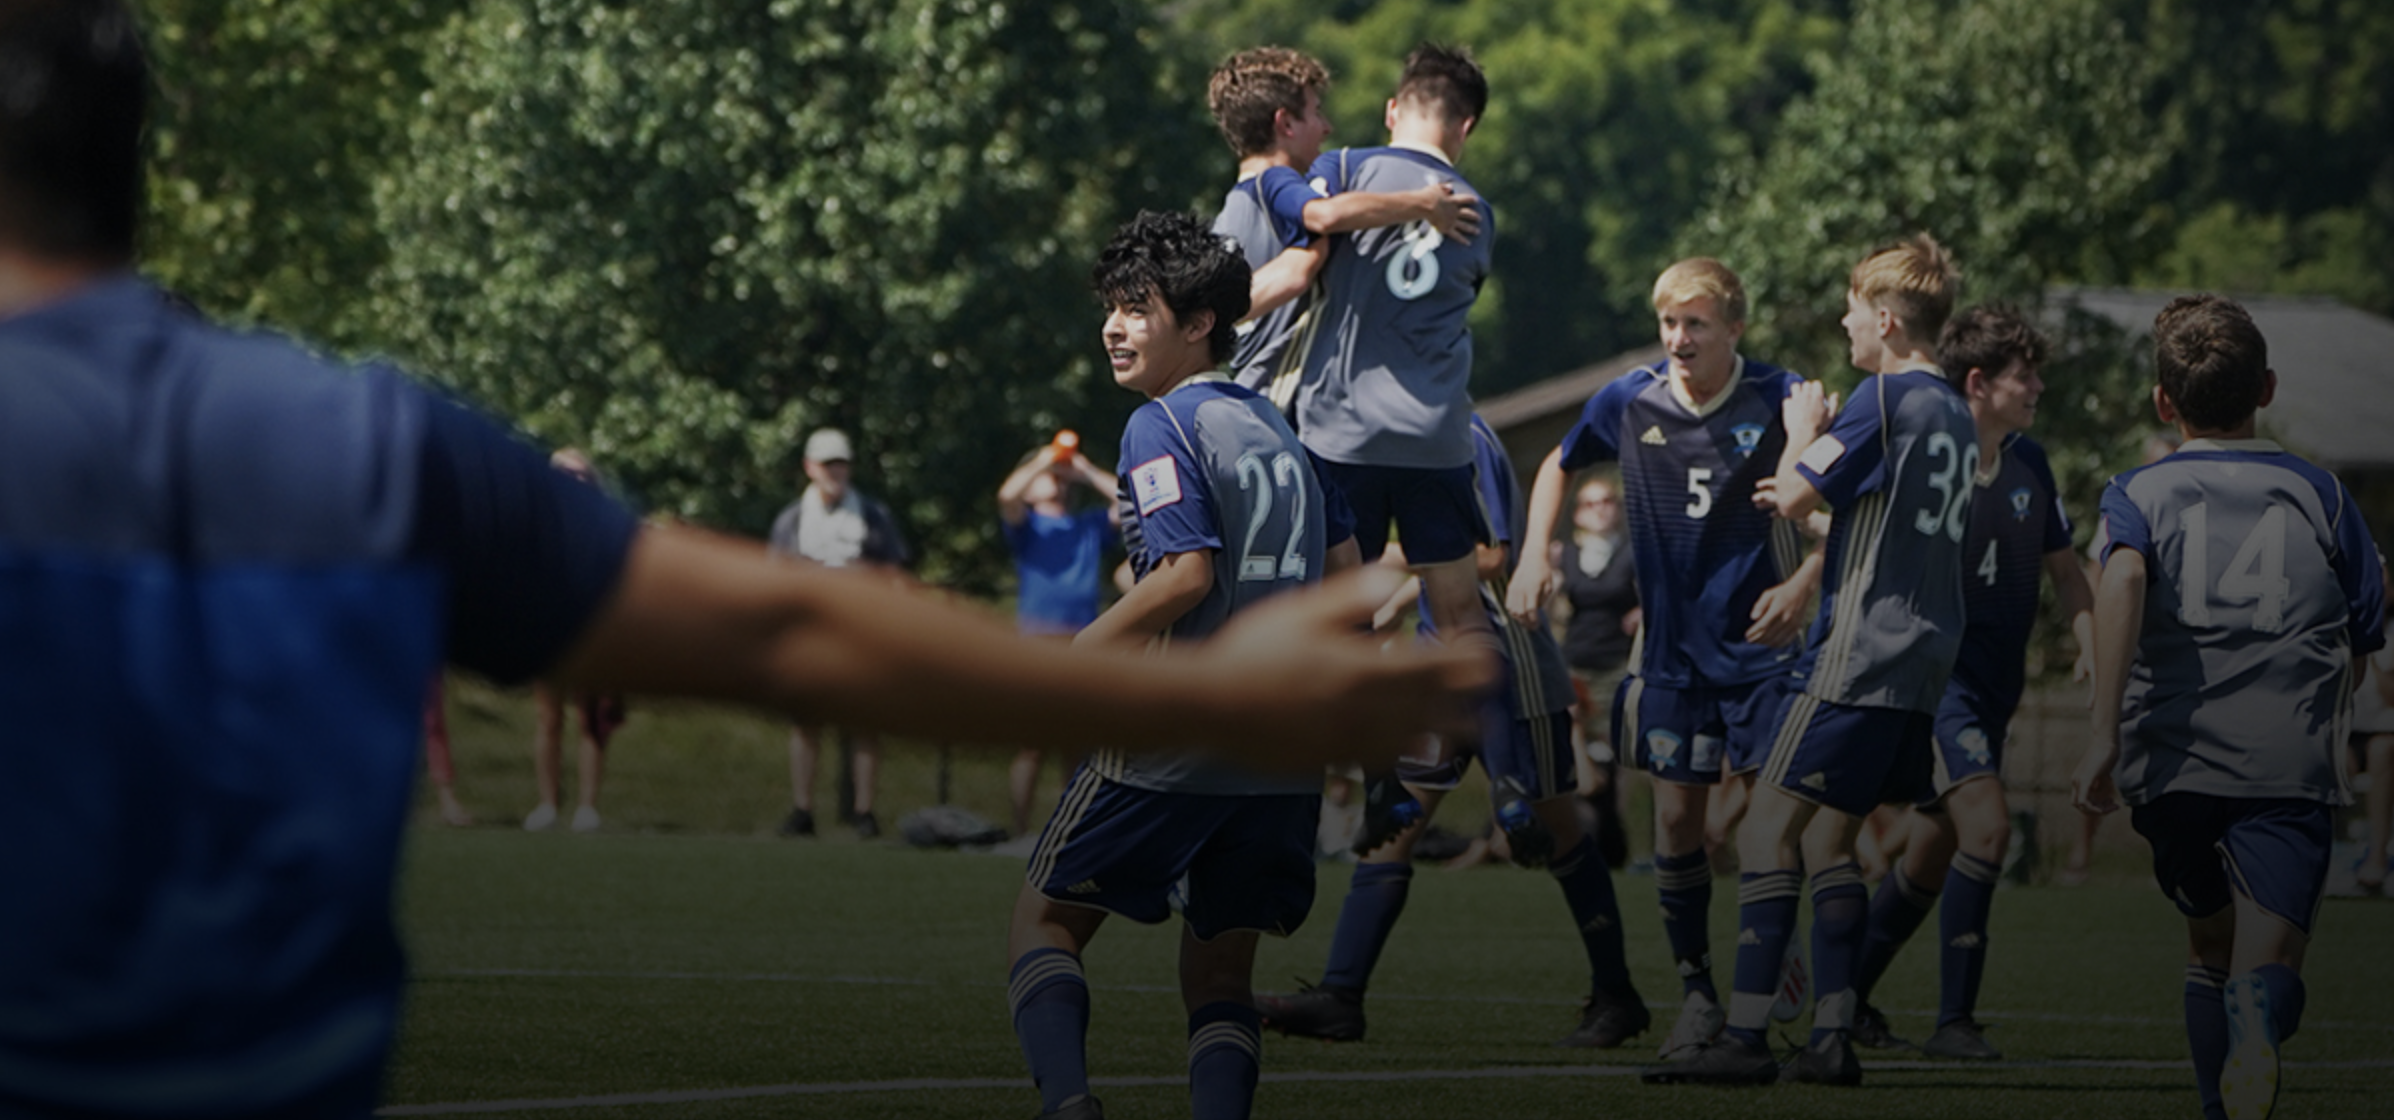 Real New Jersey 15u Boys Bounce Back To Secure The Us Youth Soccer National Championship